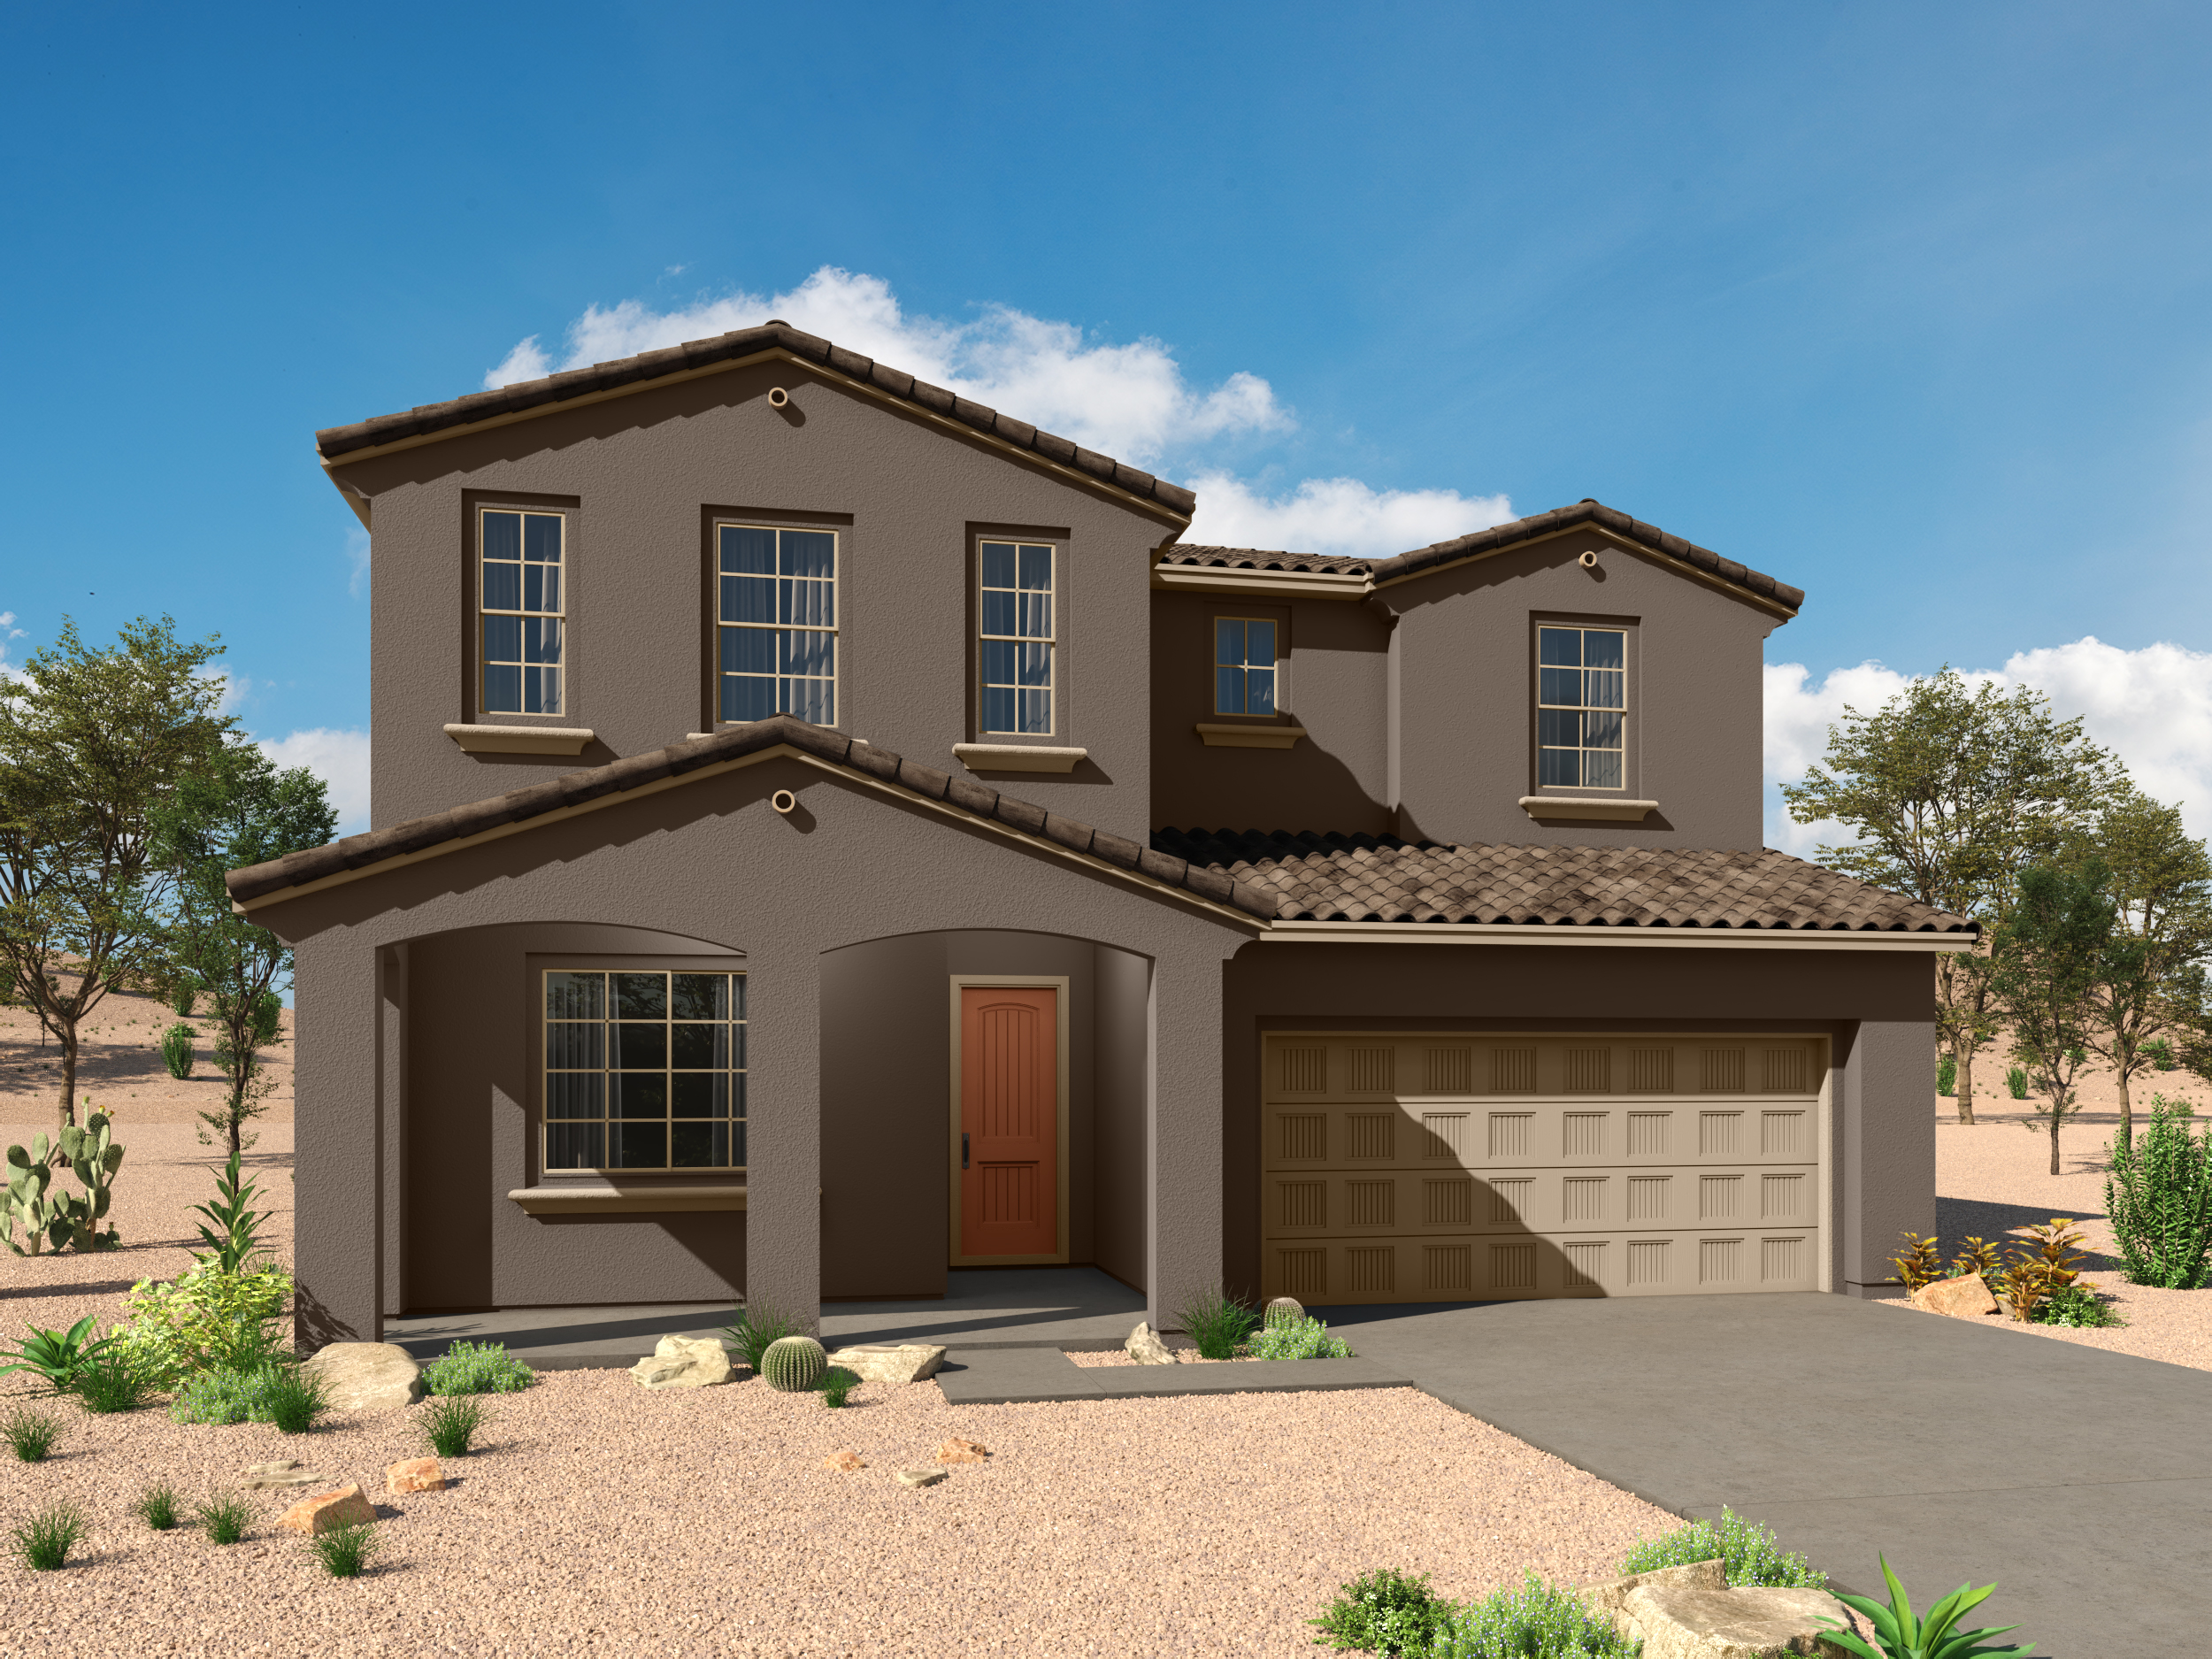 Mesquite Plan Elevation Front at Desert Oasis at Twin Peaks in Marana Arizona by Mattamy Homes